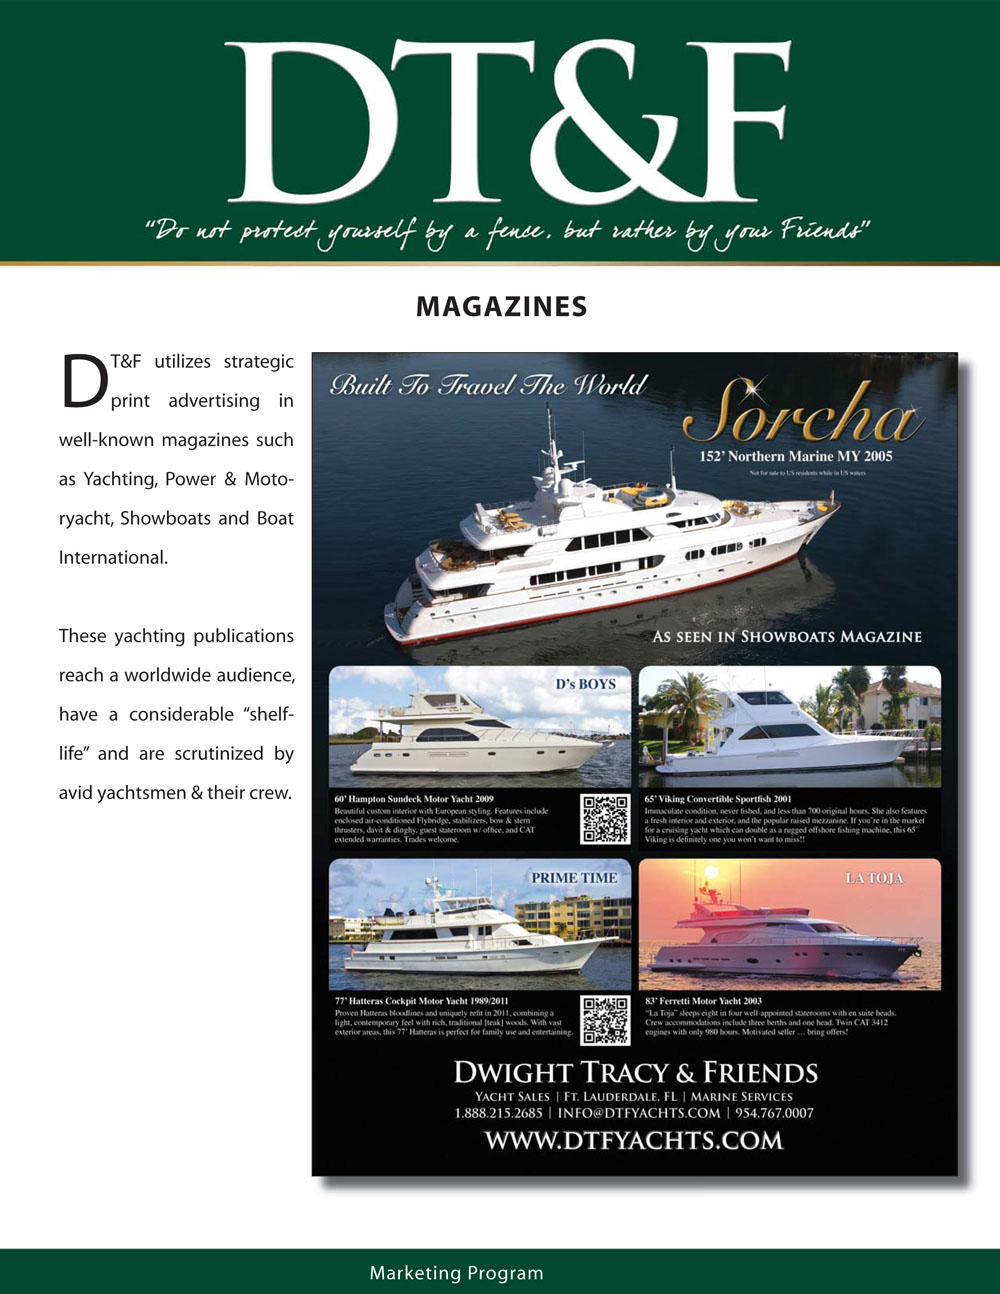 DT&F Yacht Sales Marketing Program picture 8